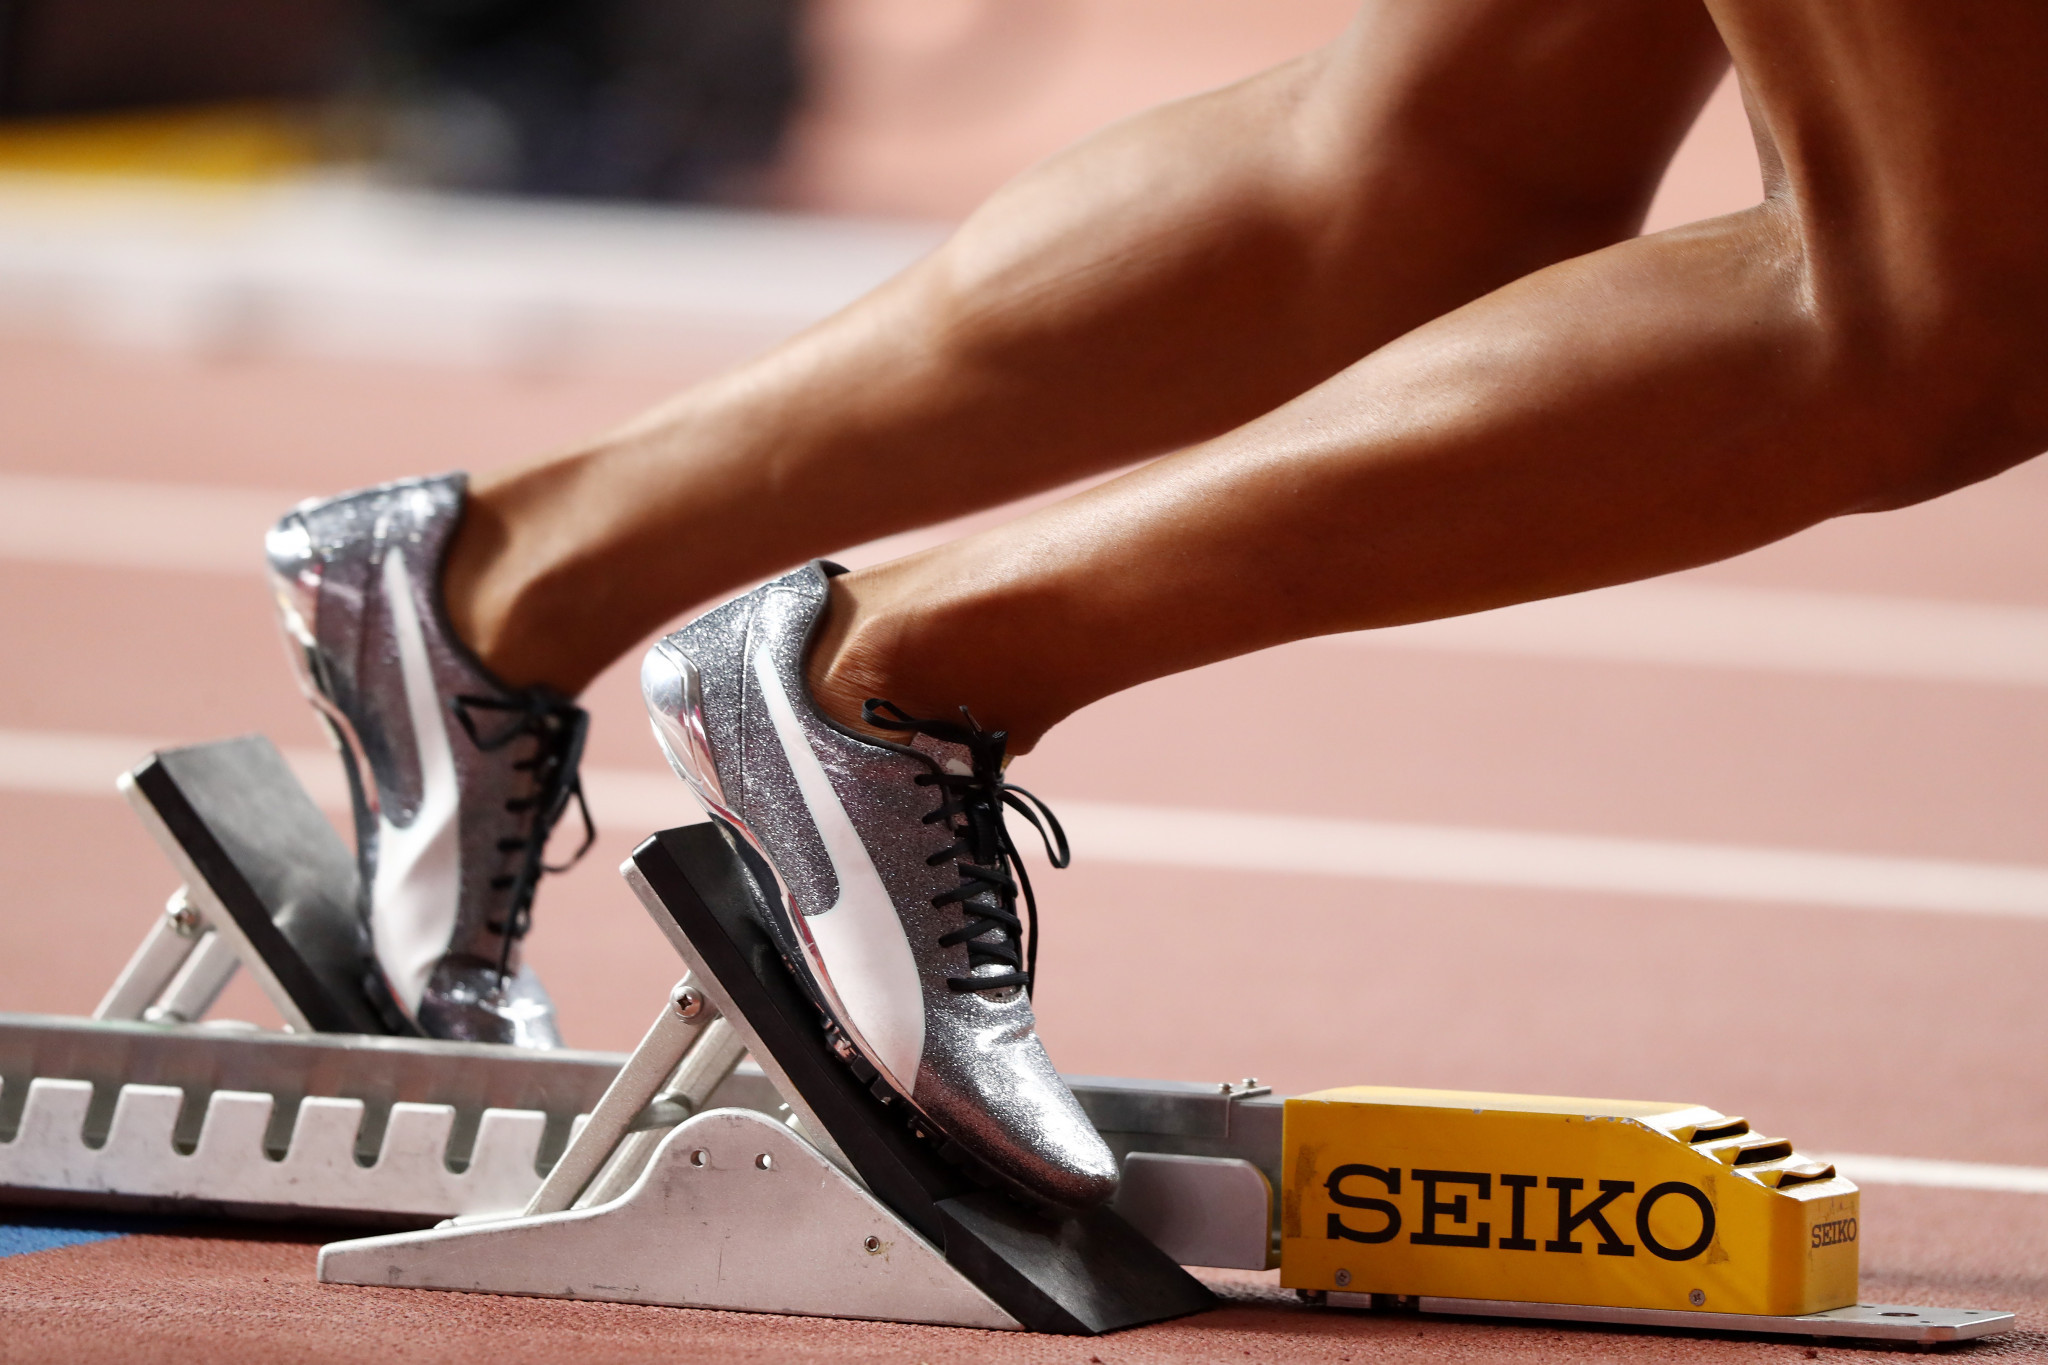 Three Pakistani medallists from South Asian Games fail doping tests